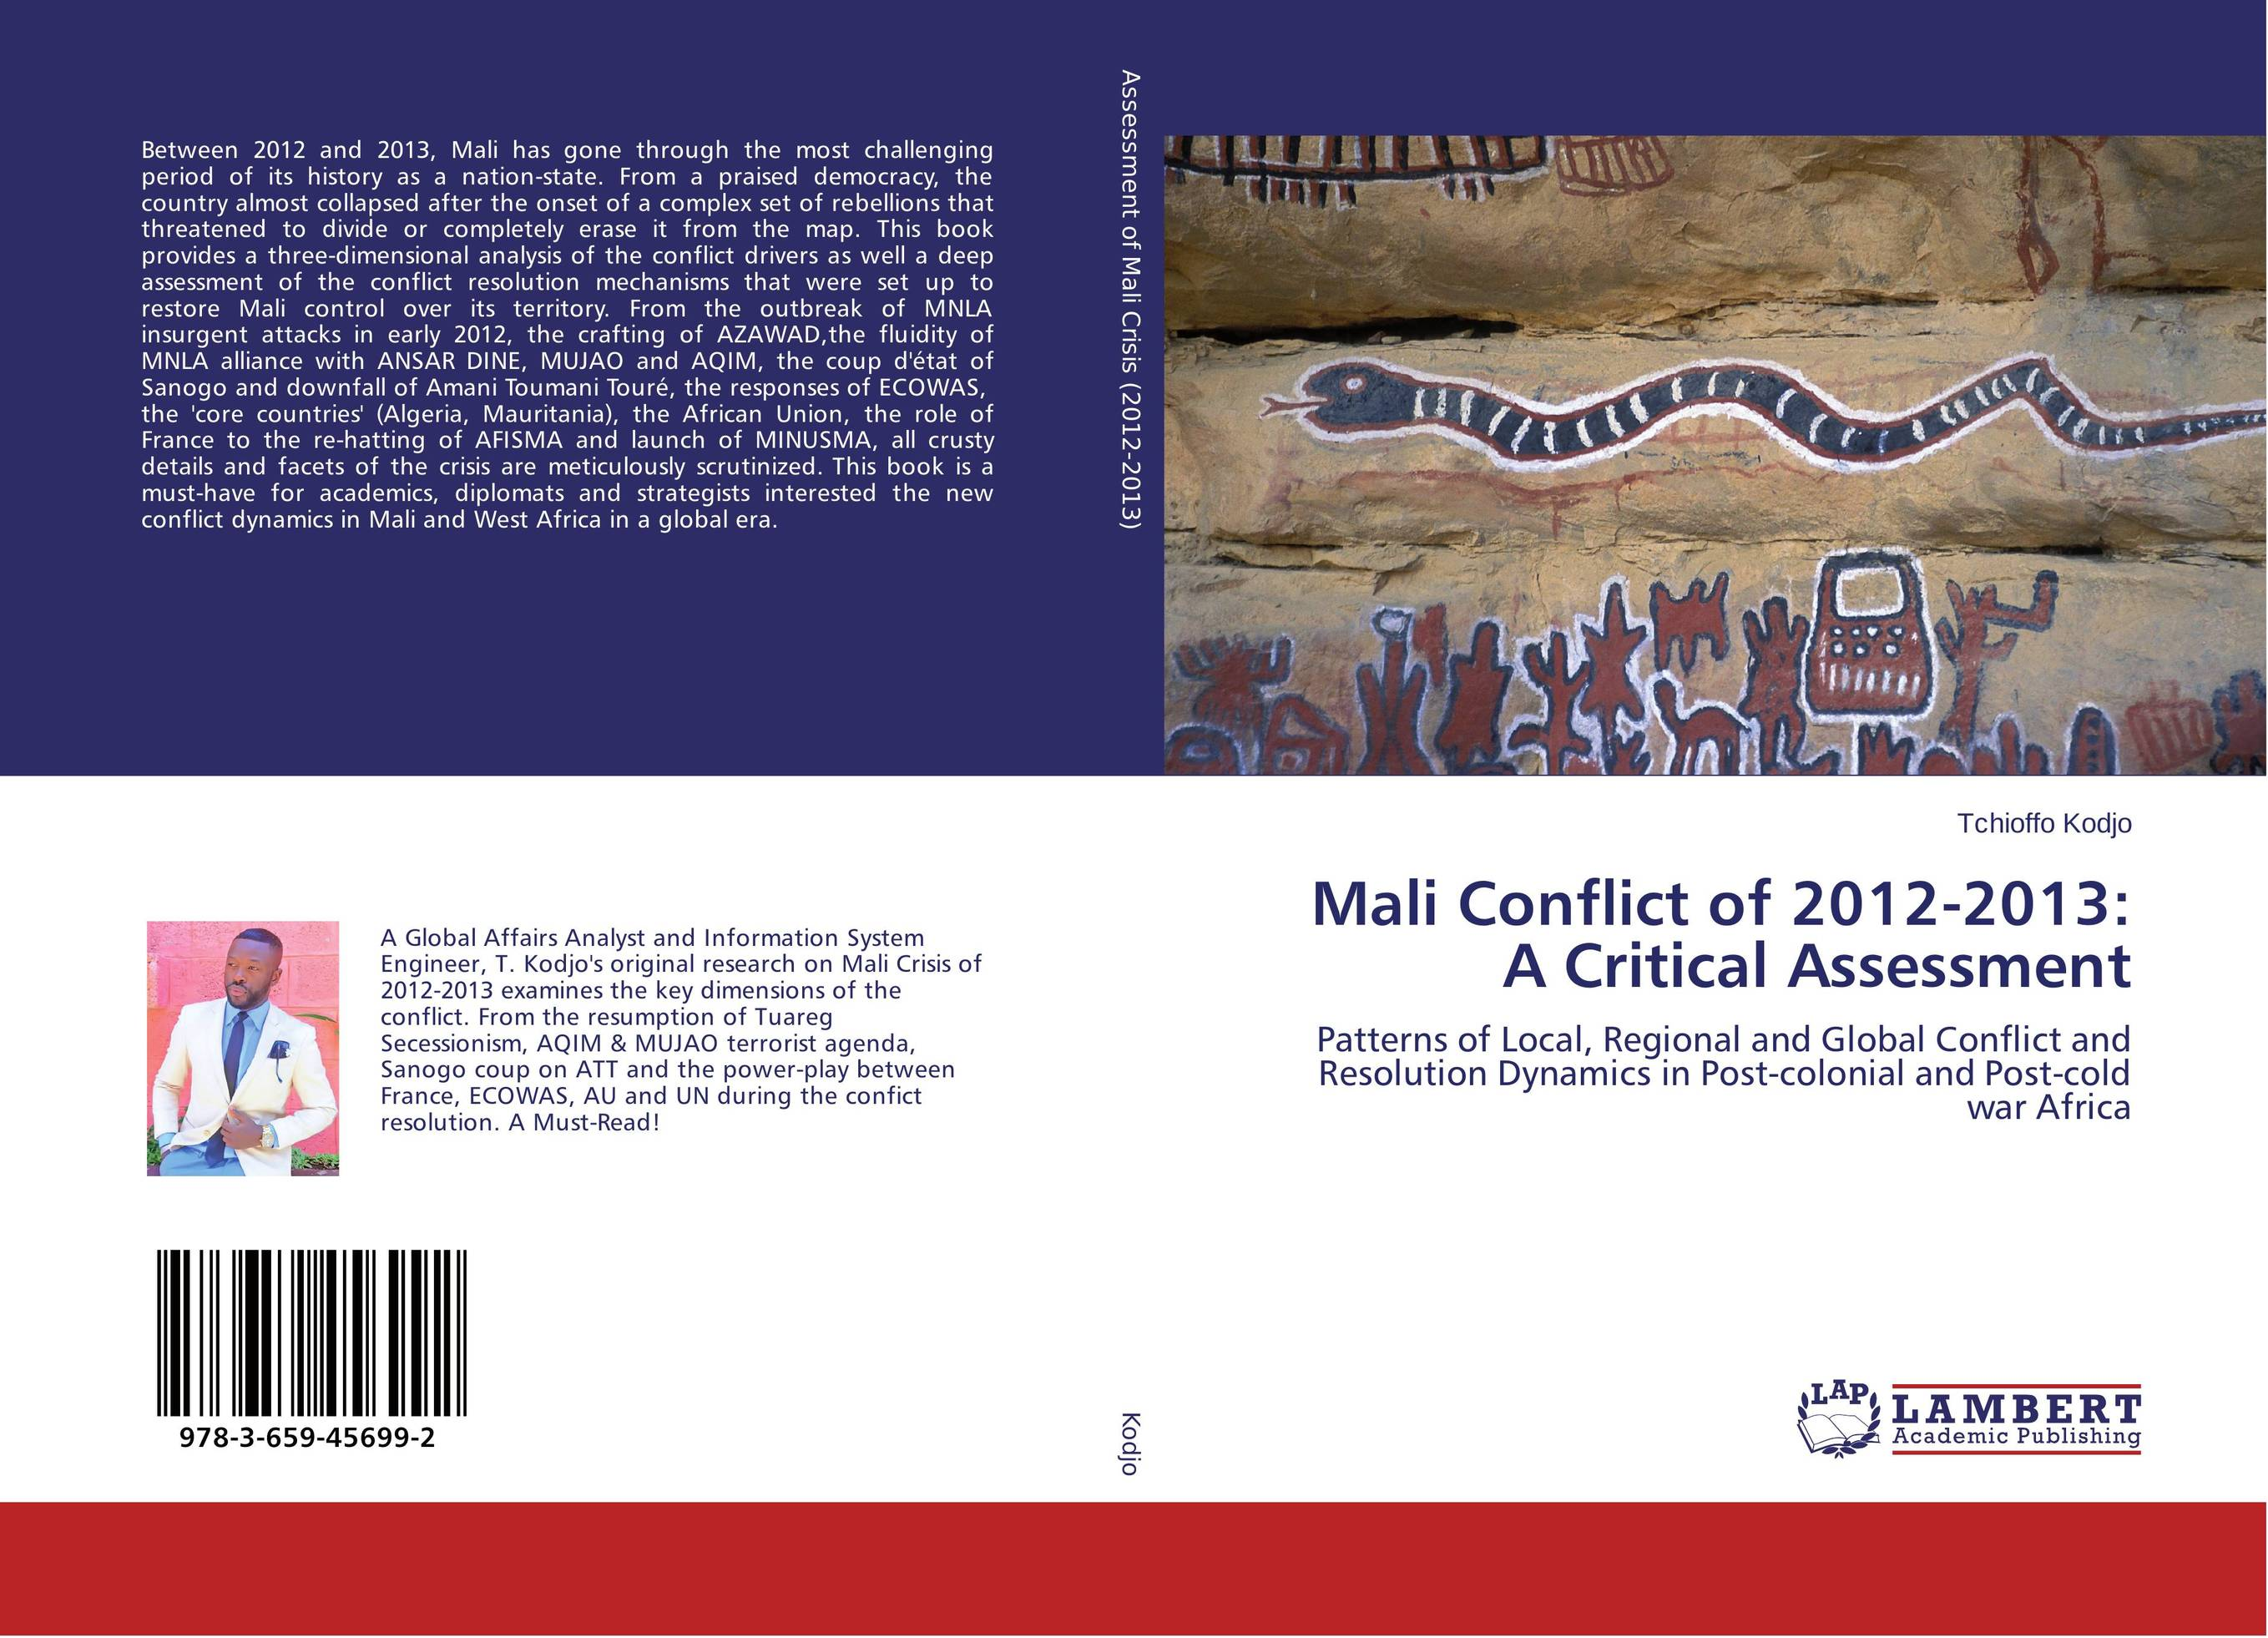 Mali Conflict of 2012-2013: A Critical Assessment insurgent